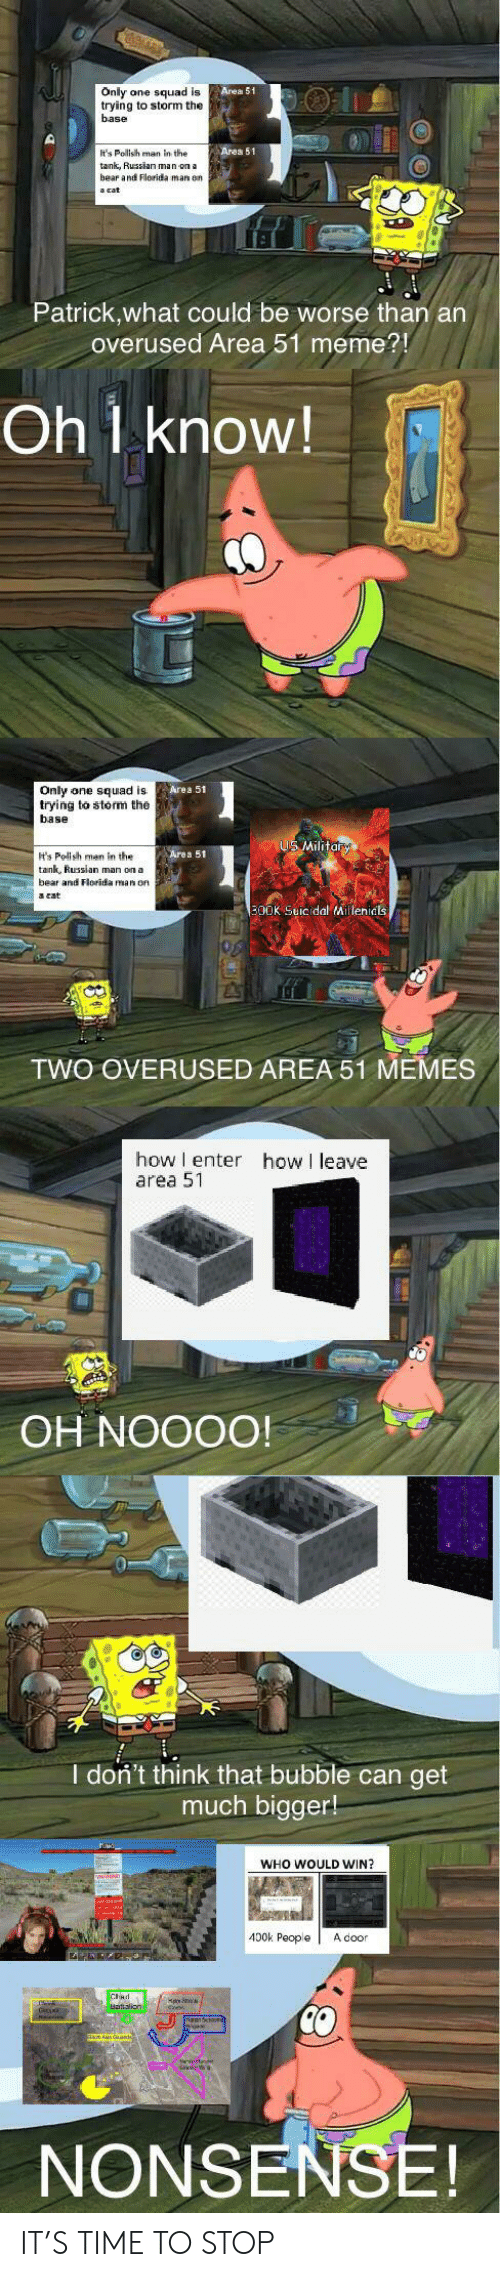 Florida Man, Meme, and Memes: Only ane squad is  trying to storm the  base  Area 51  It's Polish man in the  Area 51  beas aud cloidds man oo  Patrick,what could be worse than an  overused Area 51 meme?!  Oh 1 know!  Only one squad is  trying to storm the  base  US Military  t's Pollsh man in the  Area 51  tank, Russian man on a  and Florida man on  arat  300K Suicidal Aillenidts  TWO OVERUSED AREA 51 MEMES  how I enter  area 51  how I leave  OH NOOOO!  I don't think that bubble can get  much bigger!  WHO WOULD WIN?  400k People  A door  Cad  CO  NONSENSE! IT'S TIME TO STOP